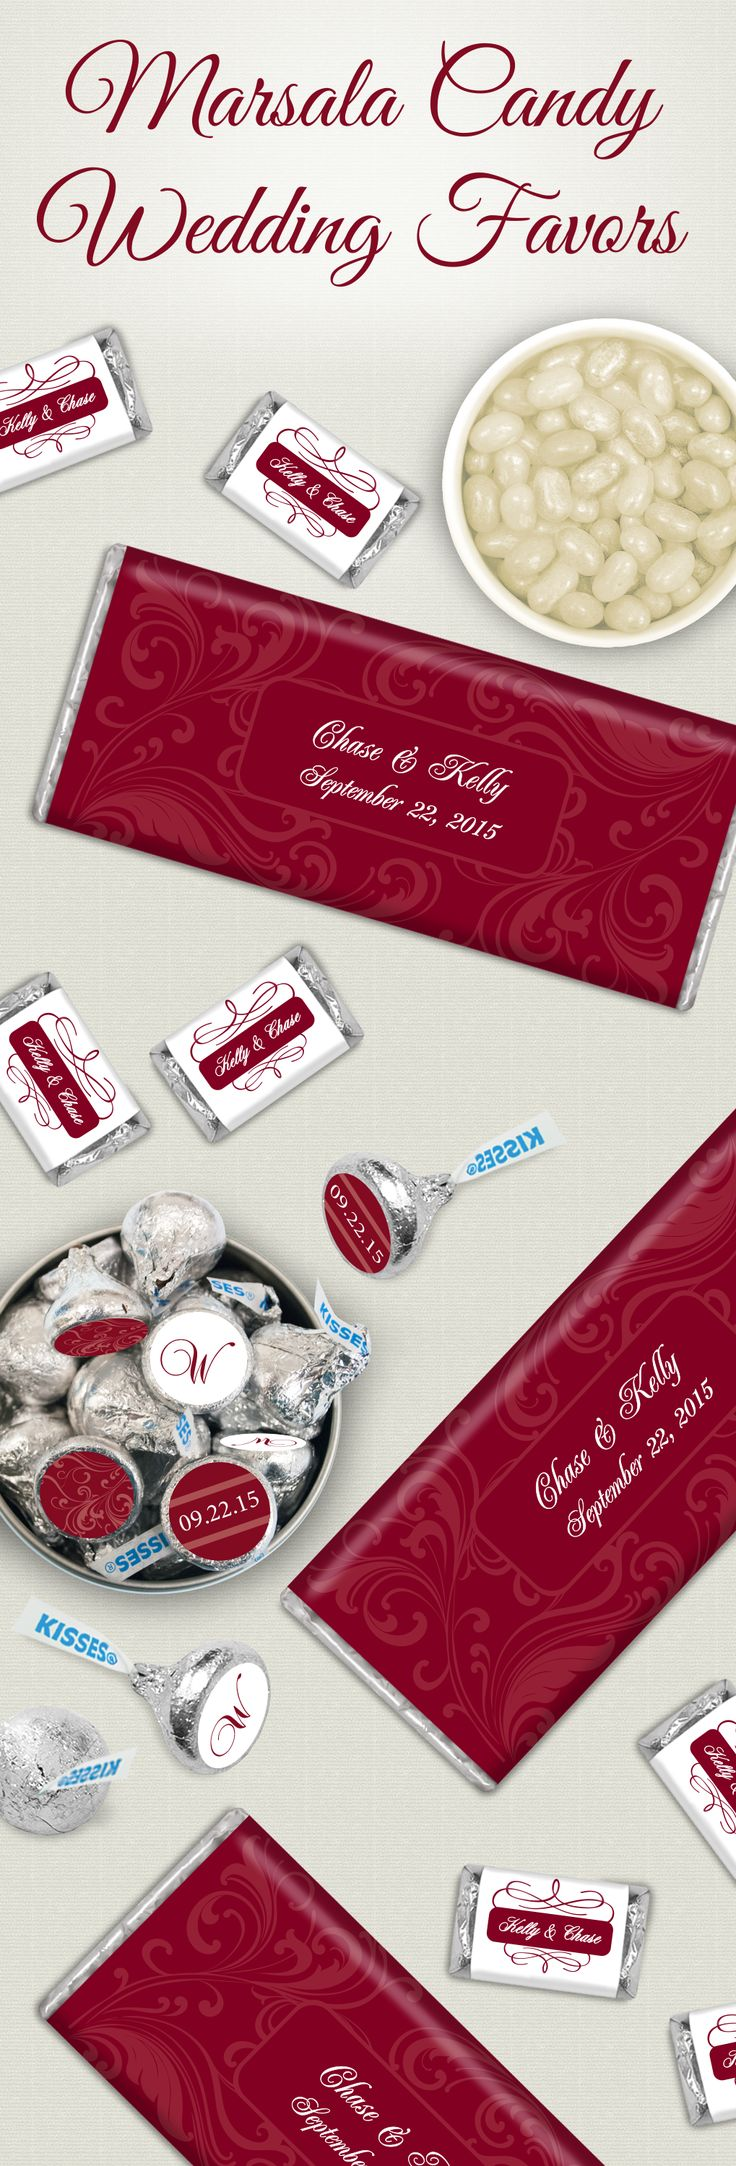 Best 25+ Candy wedding favors ideas only on Pinterest | Weddings ...